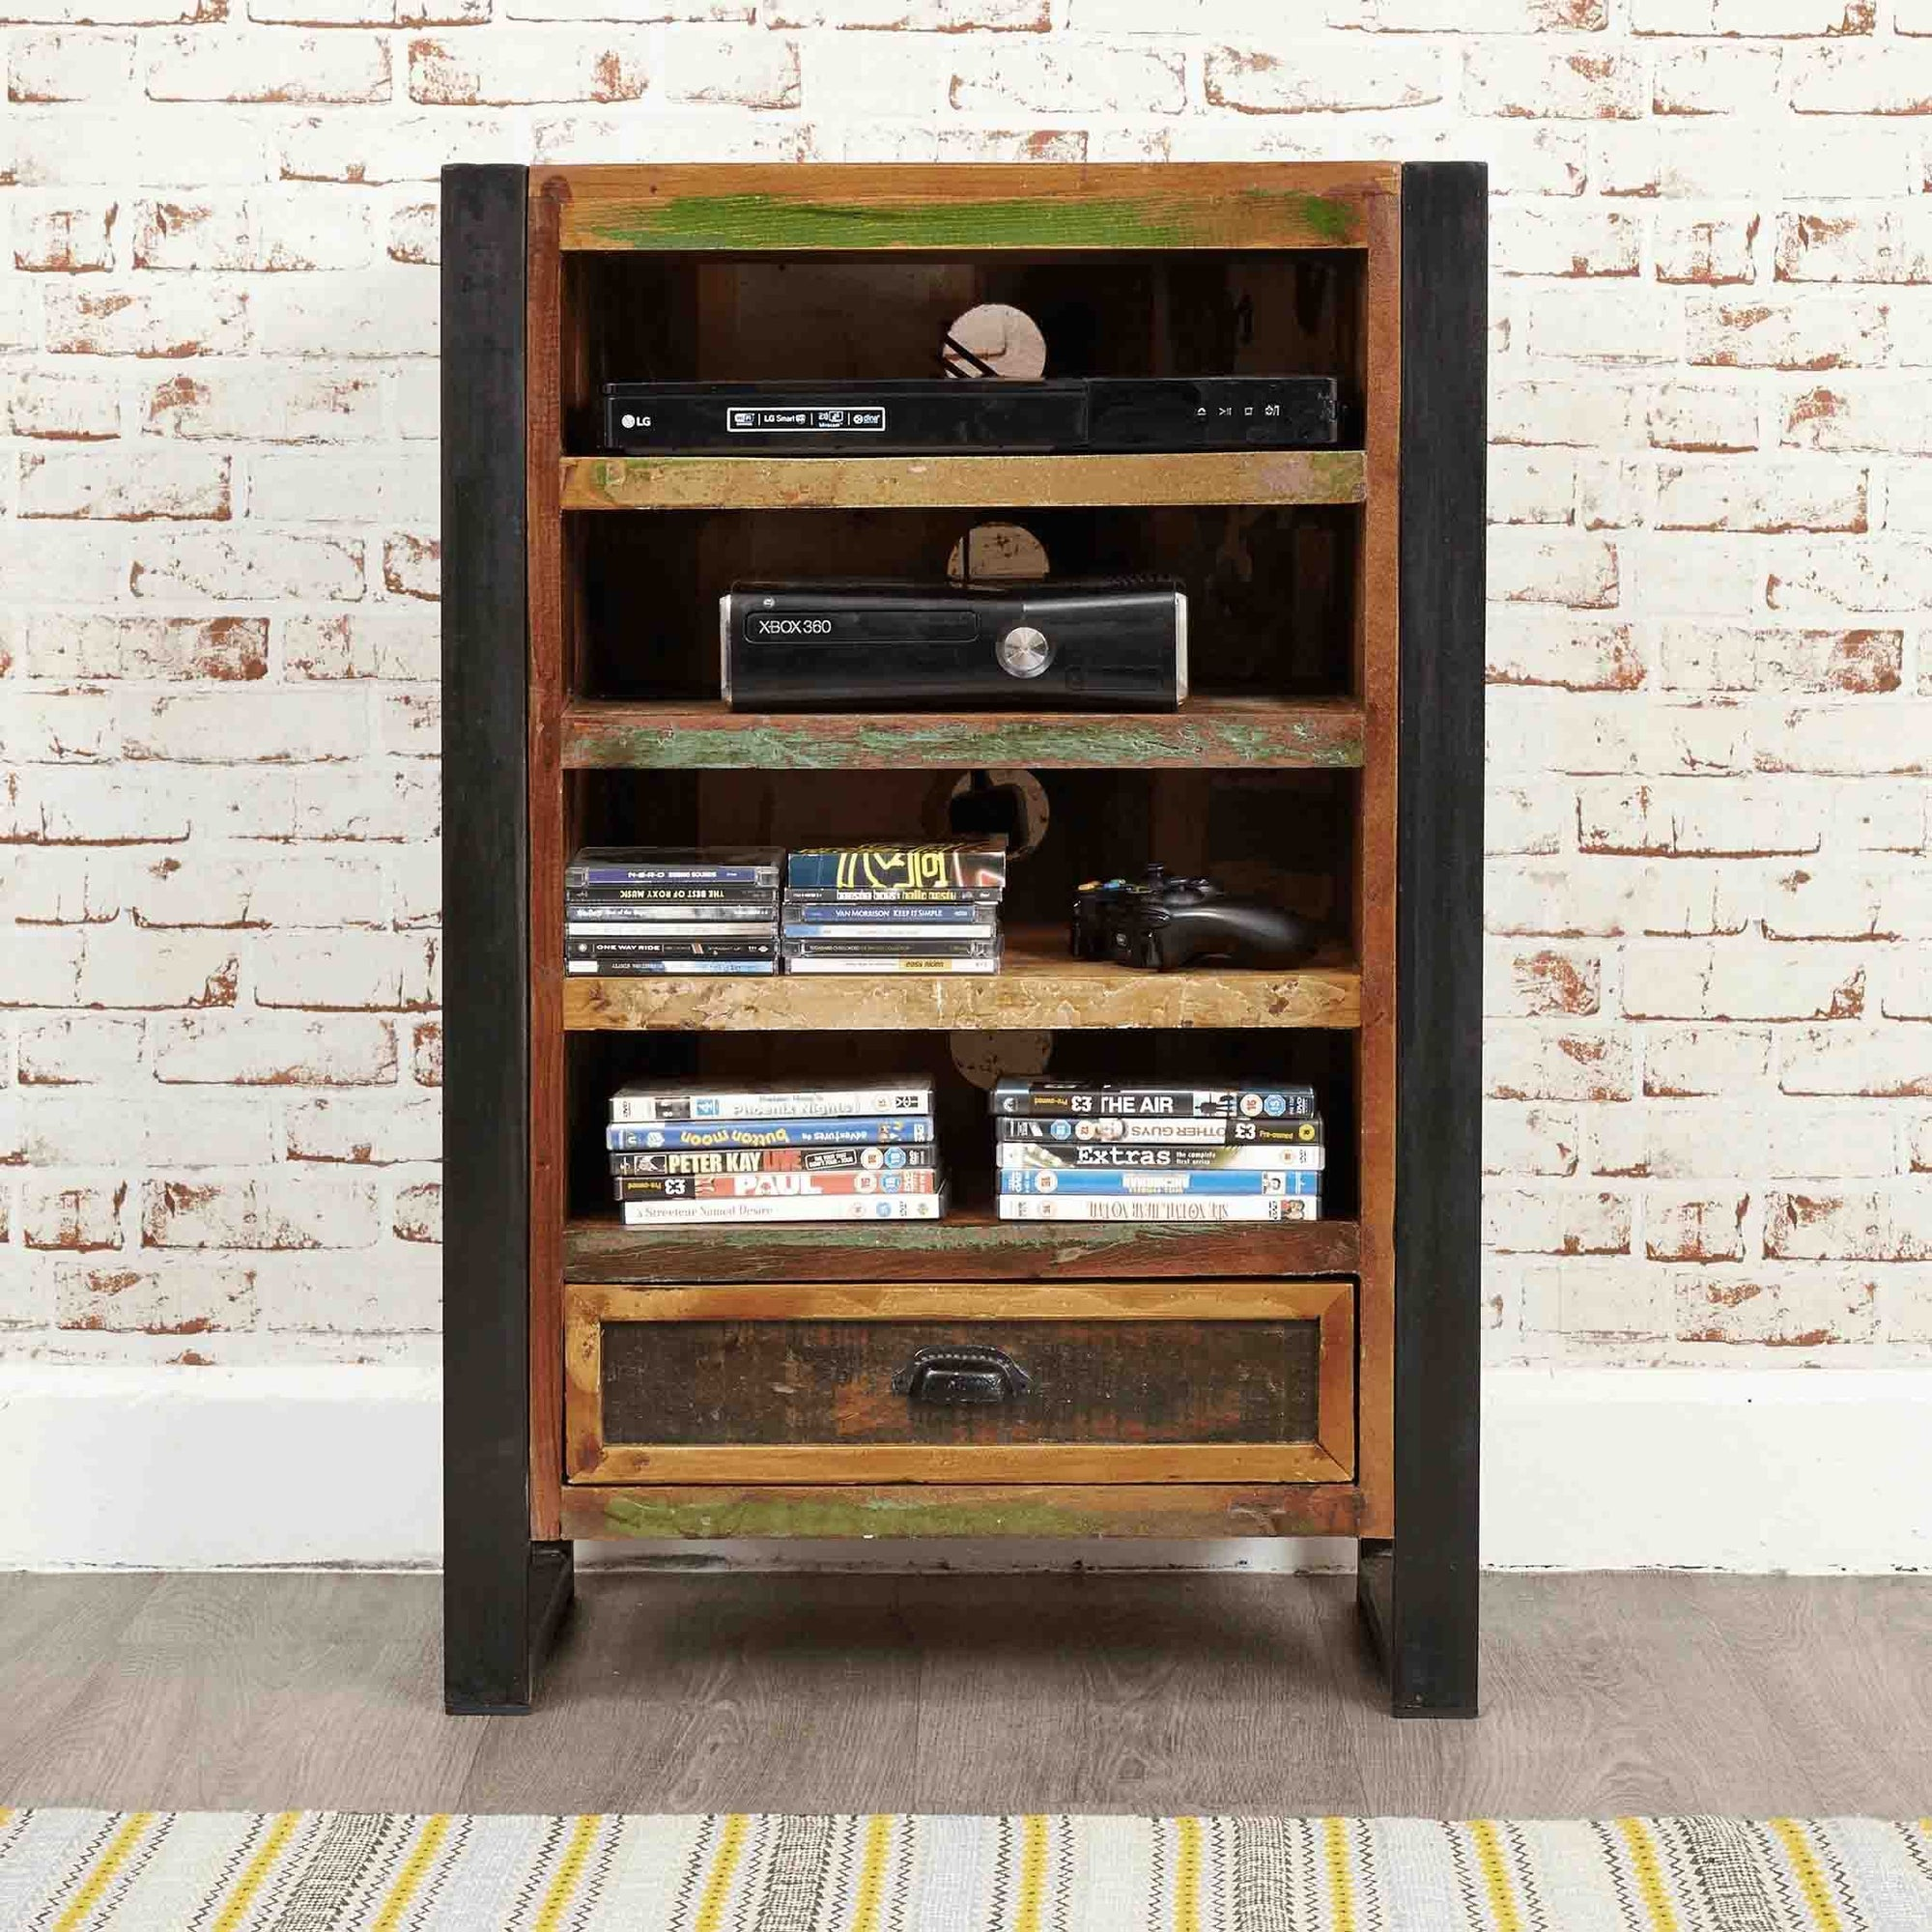 The Urban Chic Industrial Reclaimed Wood Entertainment Cabinet from Roseland Furniture